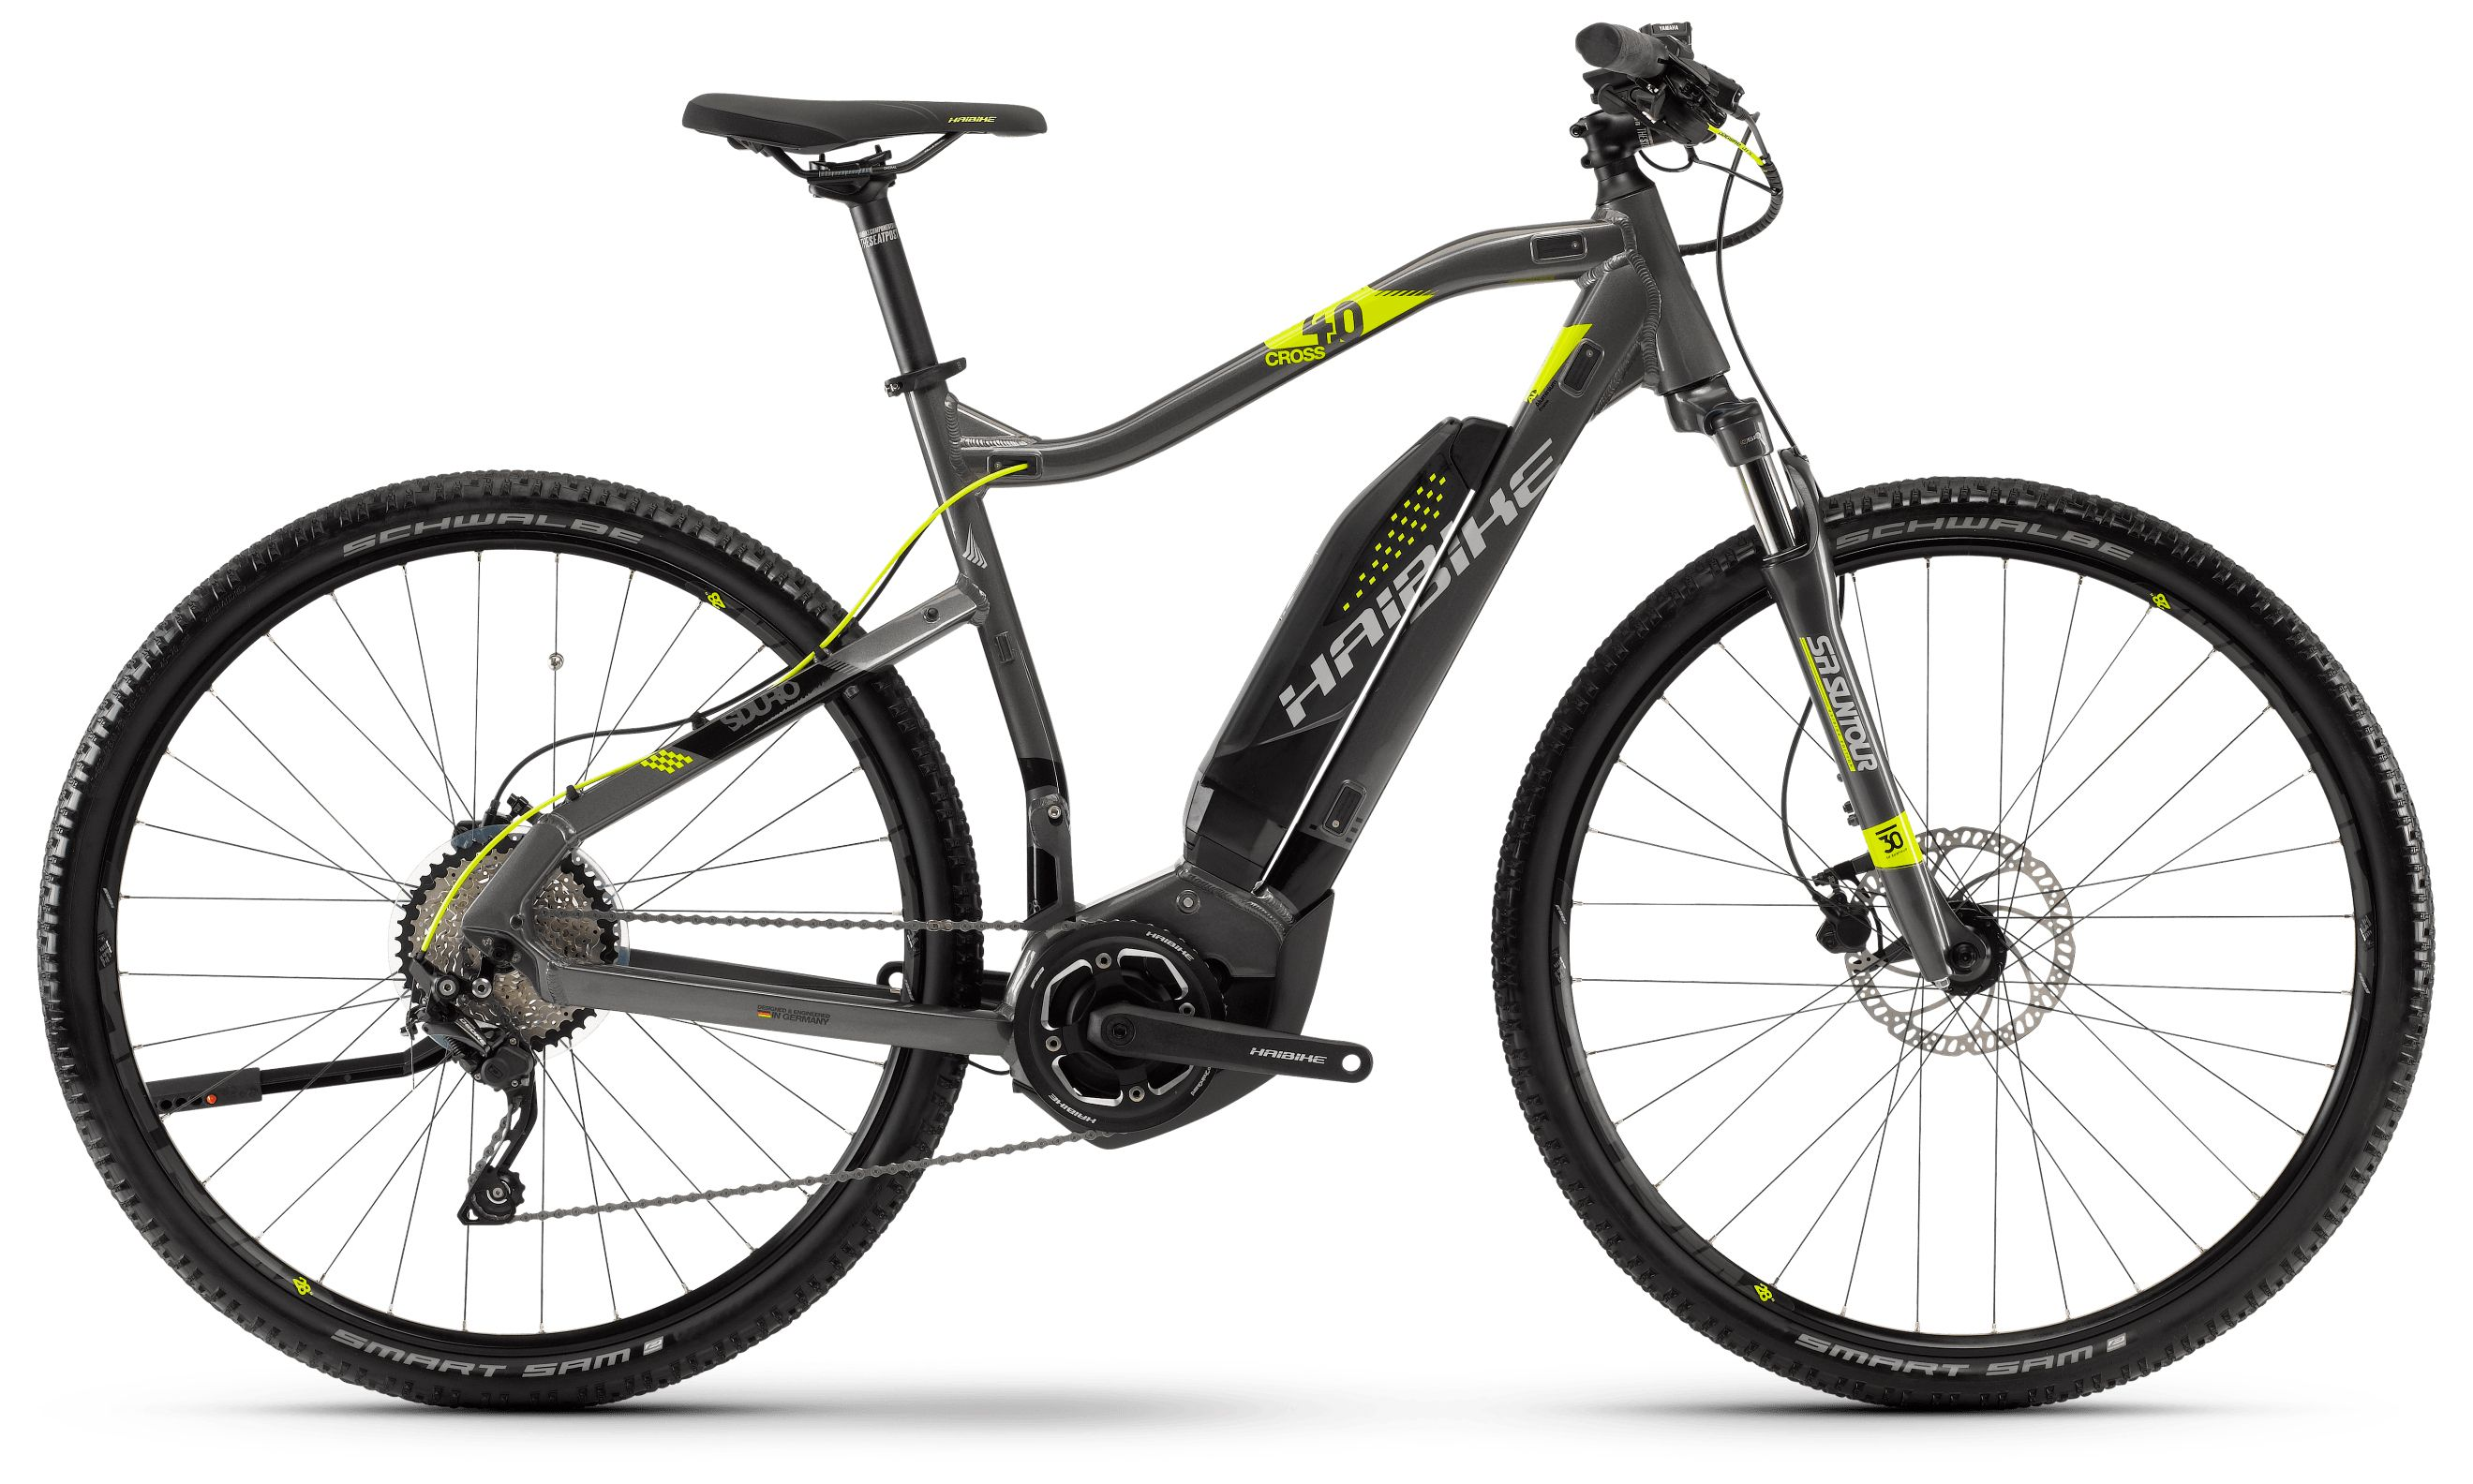 Велосипед Haibike Sduro Cross 4.0 men 400Wh 10s Deore 2018